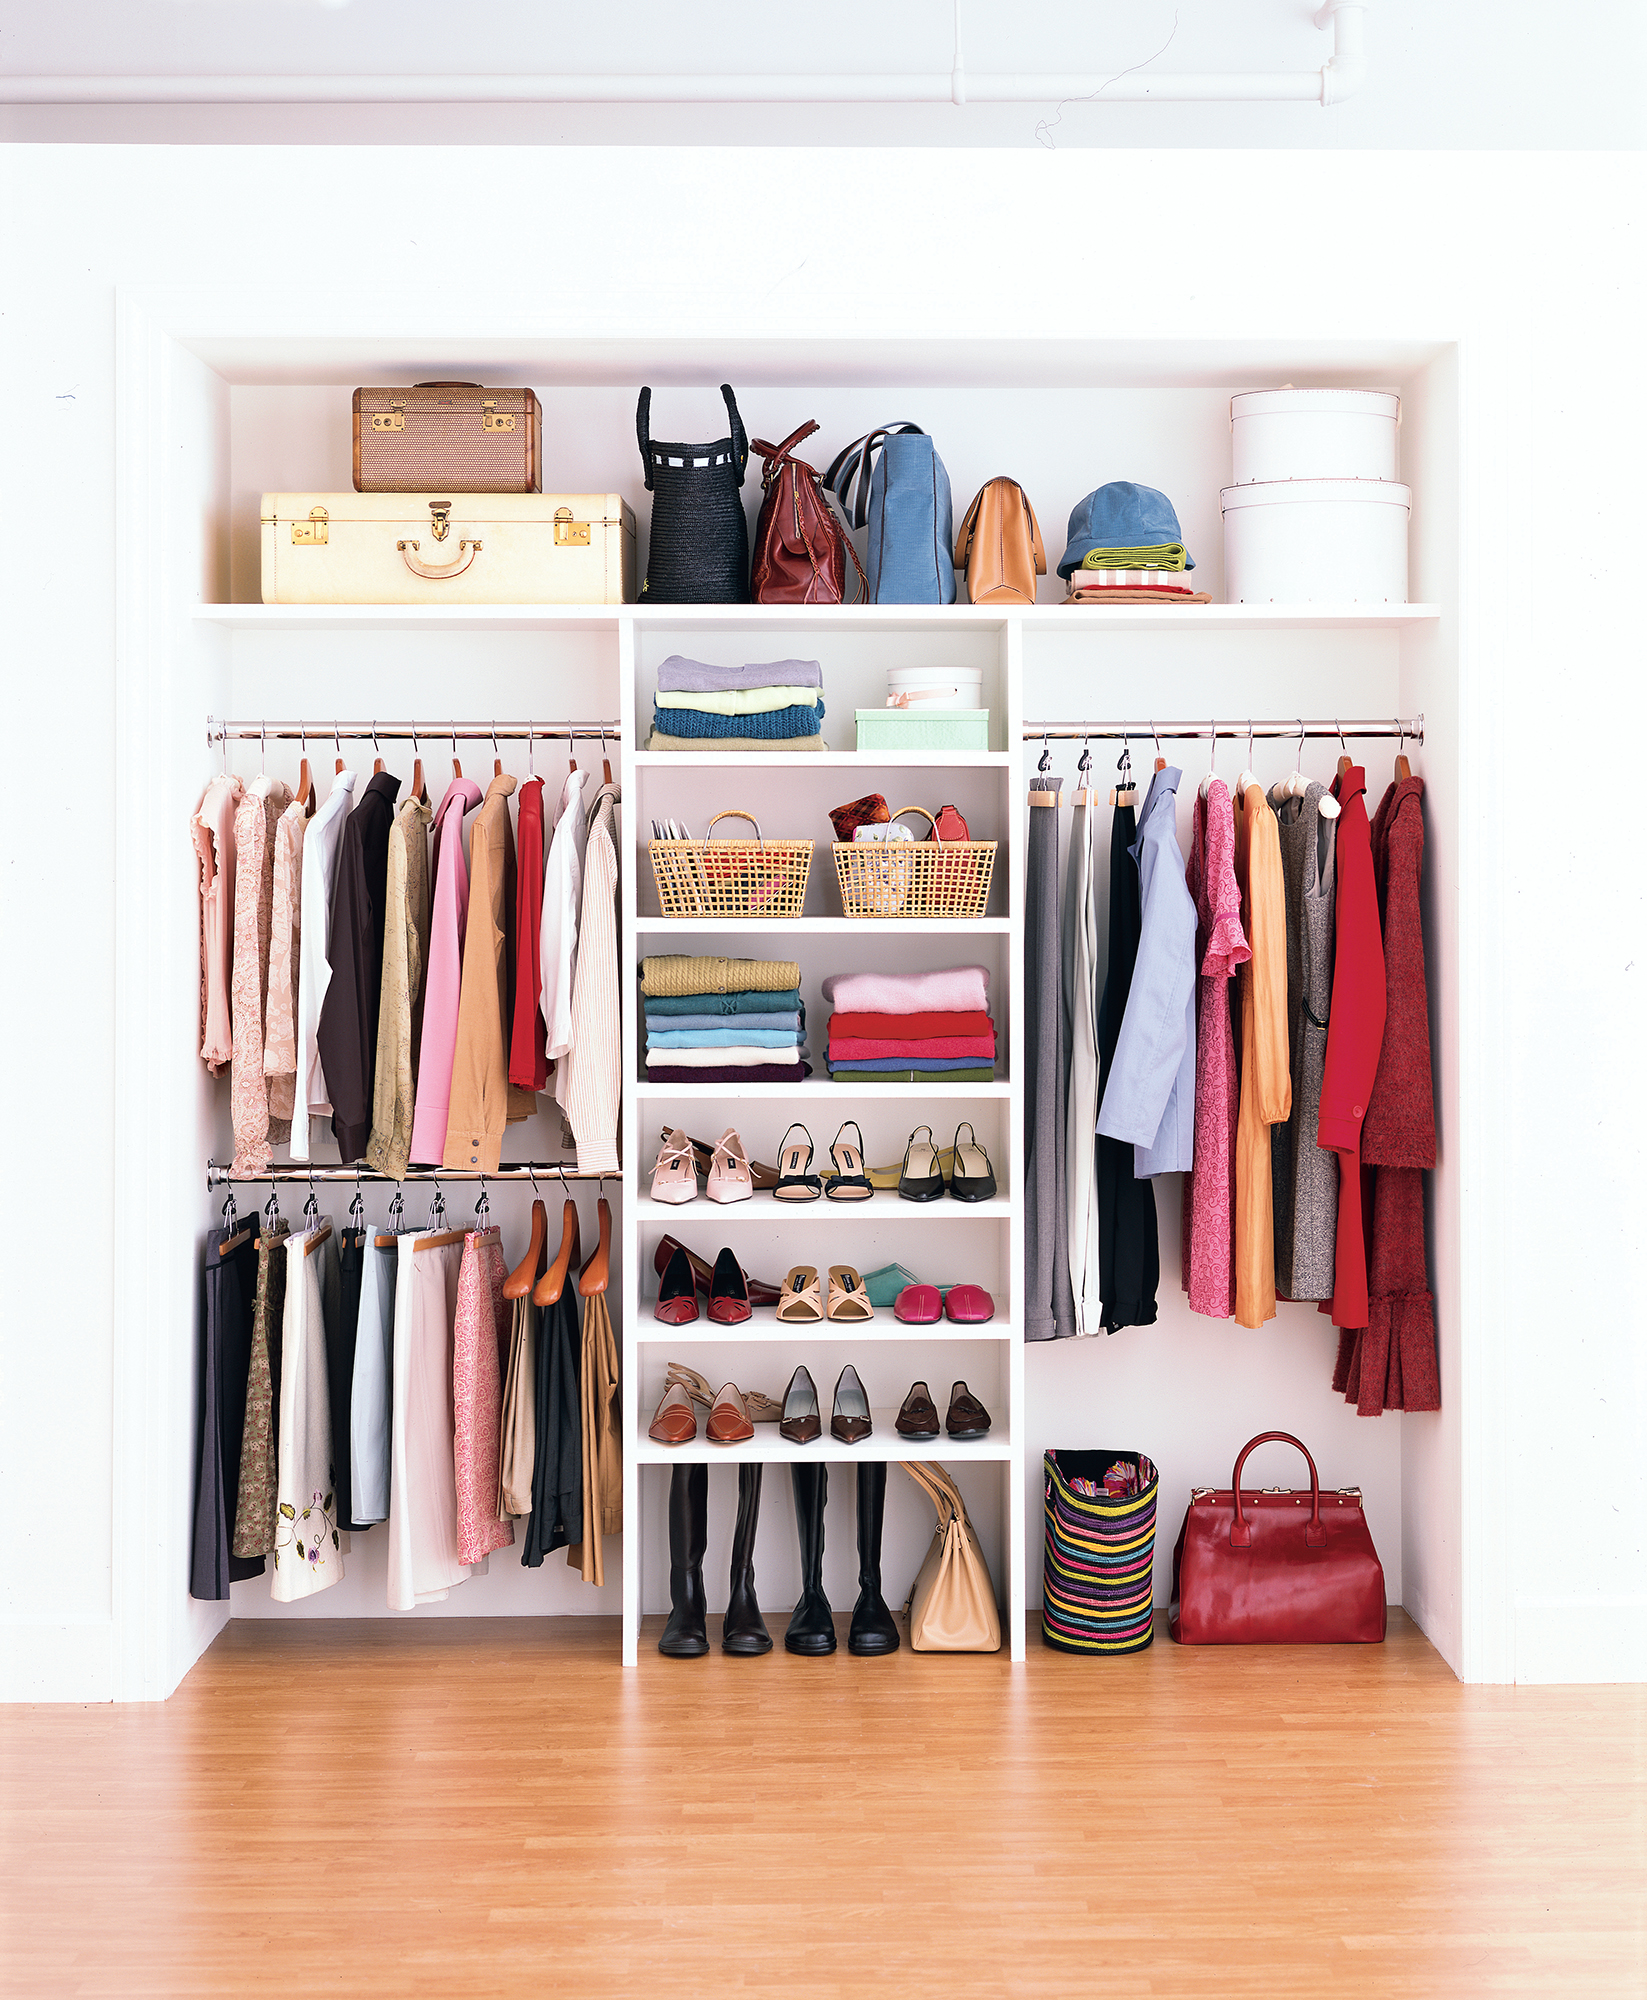 Closet-compartment: filling and organization of internal space